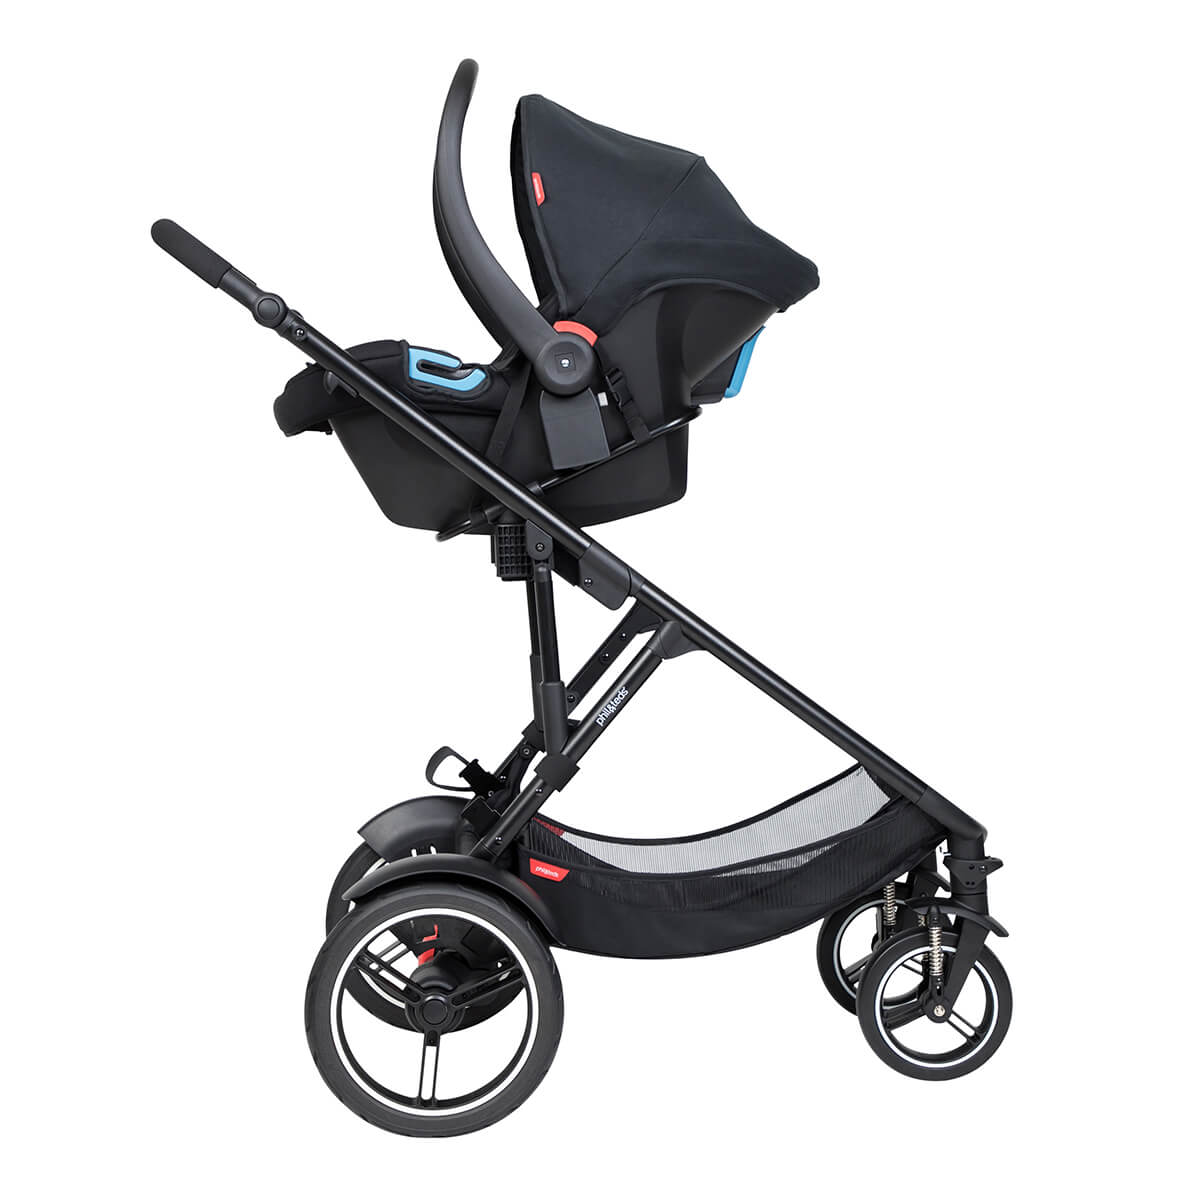 https://cdn.accentuate.io/4509529571416/19272668119128/philteds-voyager-buggy-with-travel-system-in-parent-facing-mode-v1626484745028.jpg?1200x1200